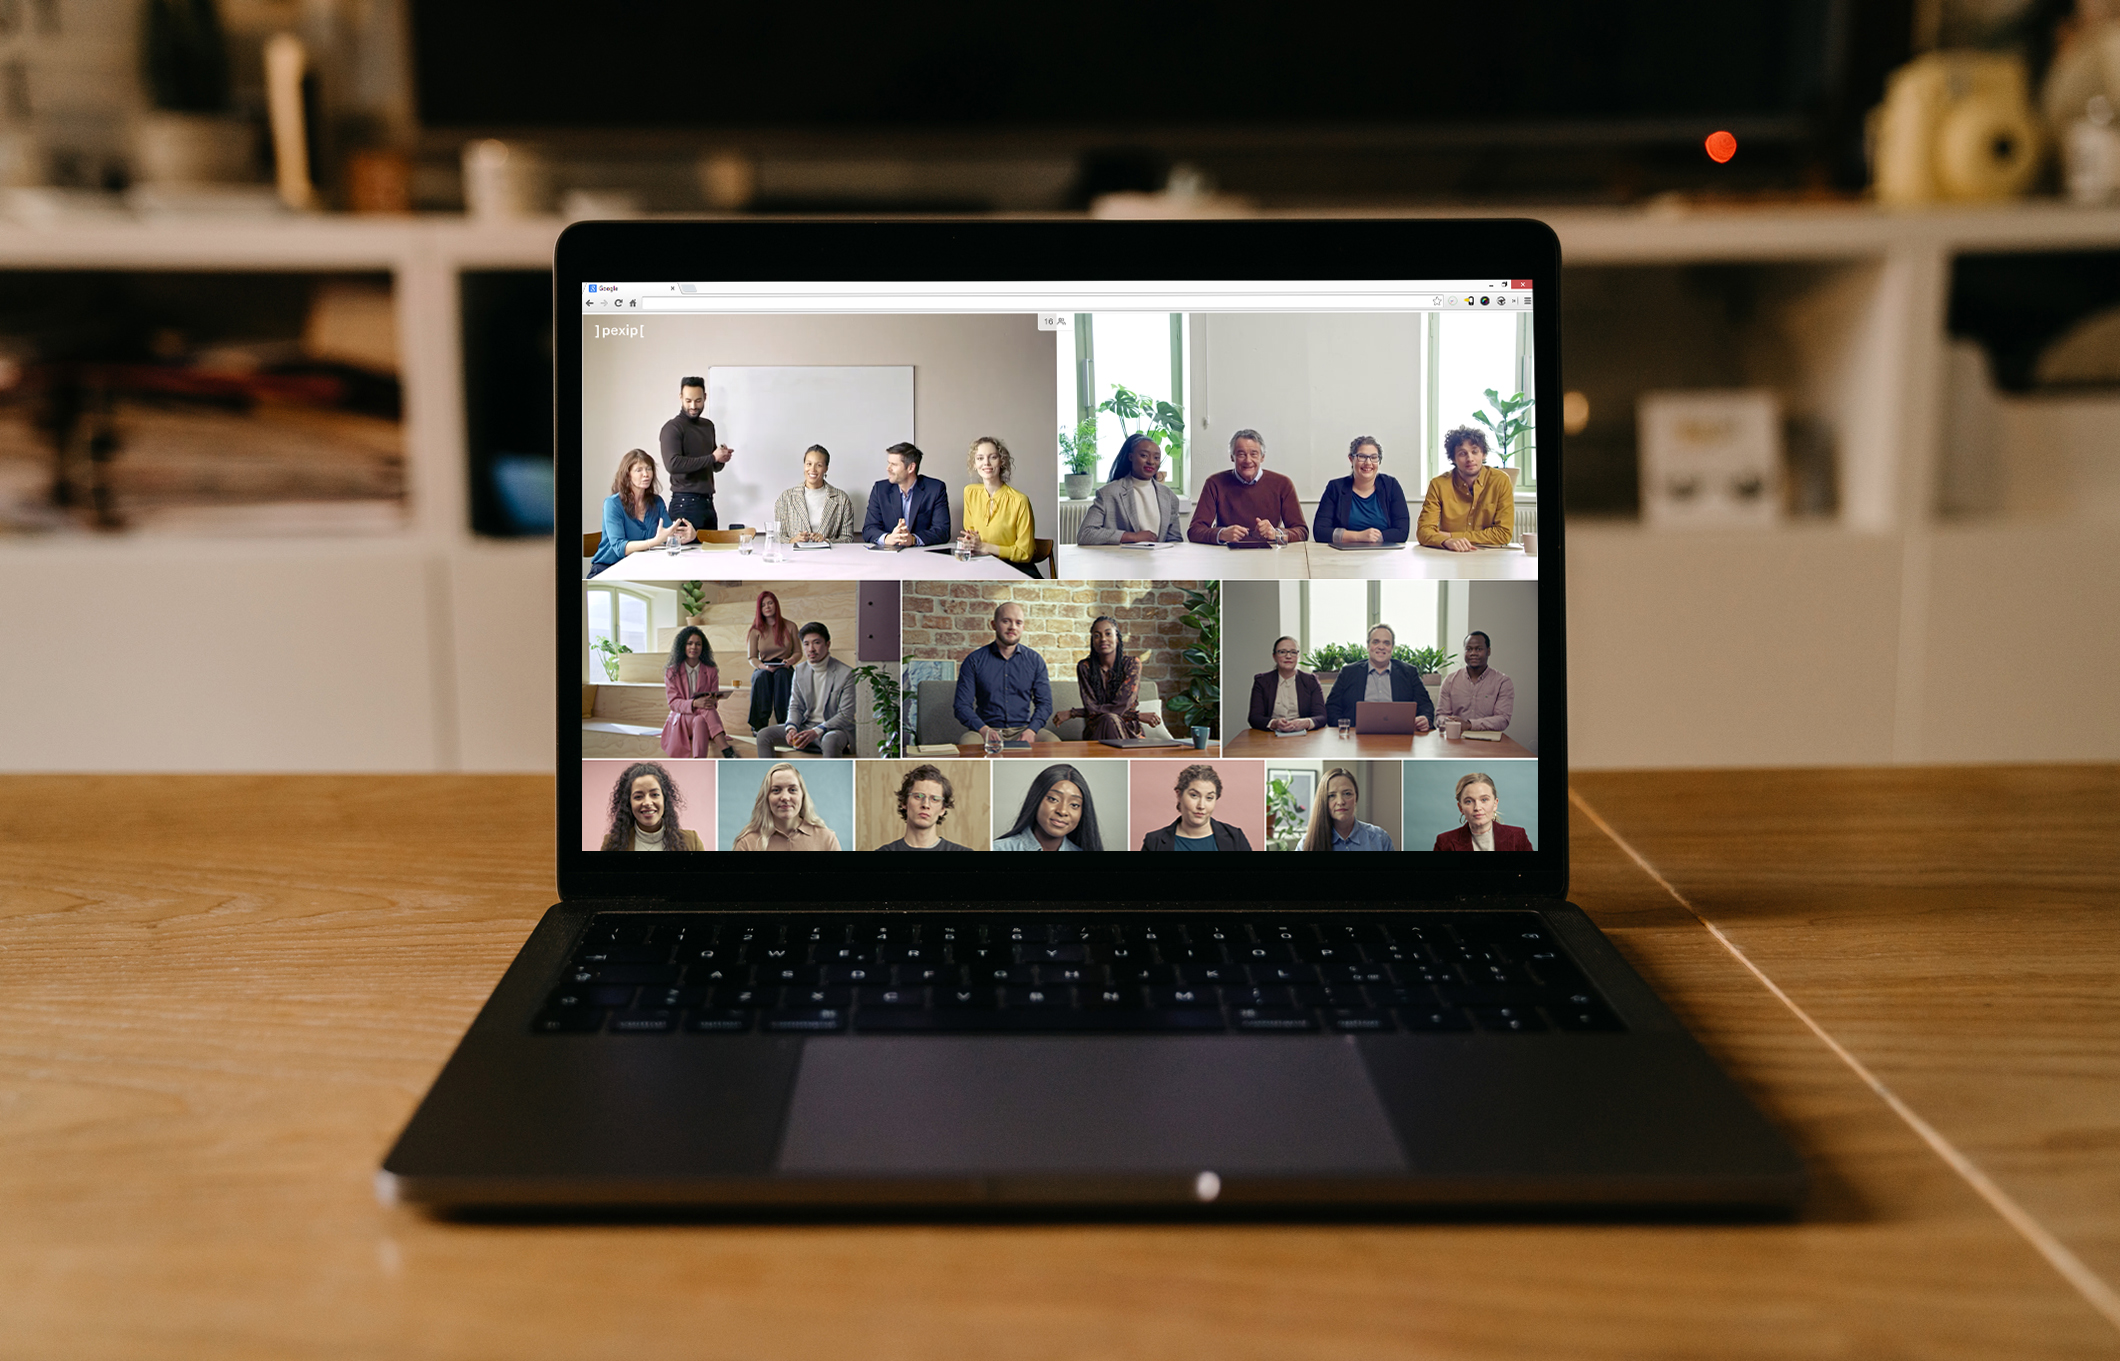 Meeting inclusion on video conferencing